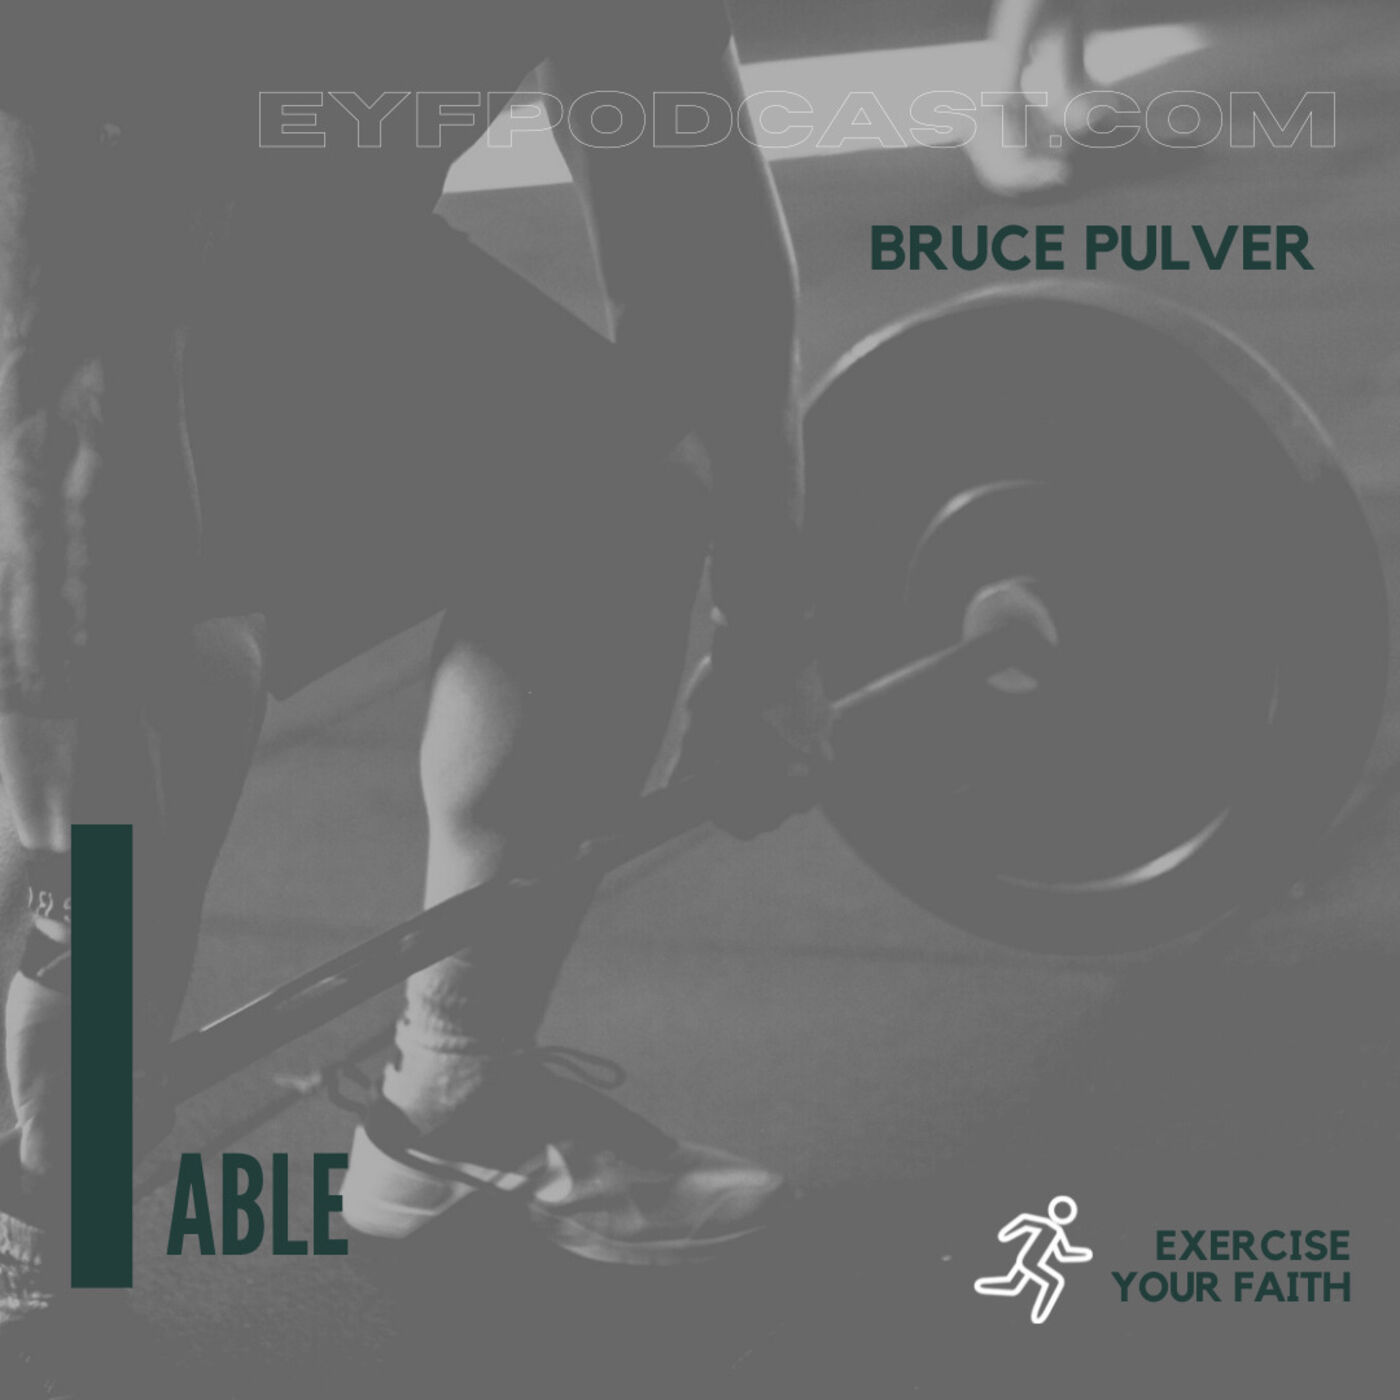 EYFPodcast- Exercise Your Faith by recognizing you're ABLE with Bruce Pulver